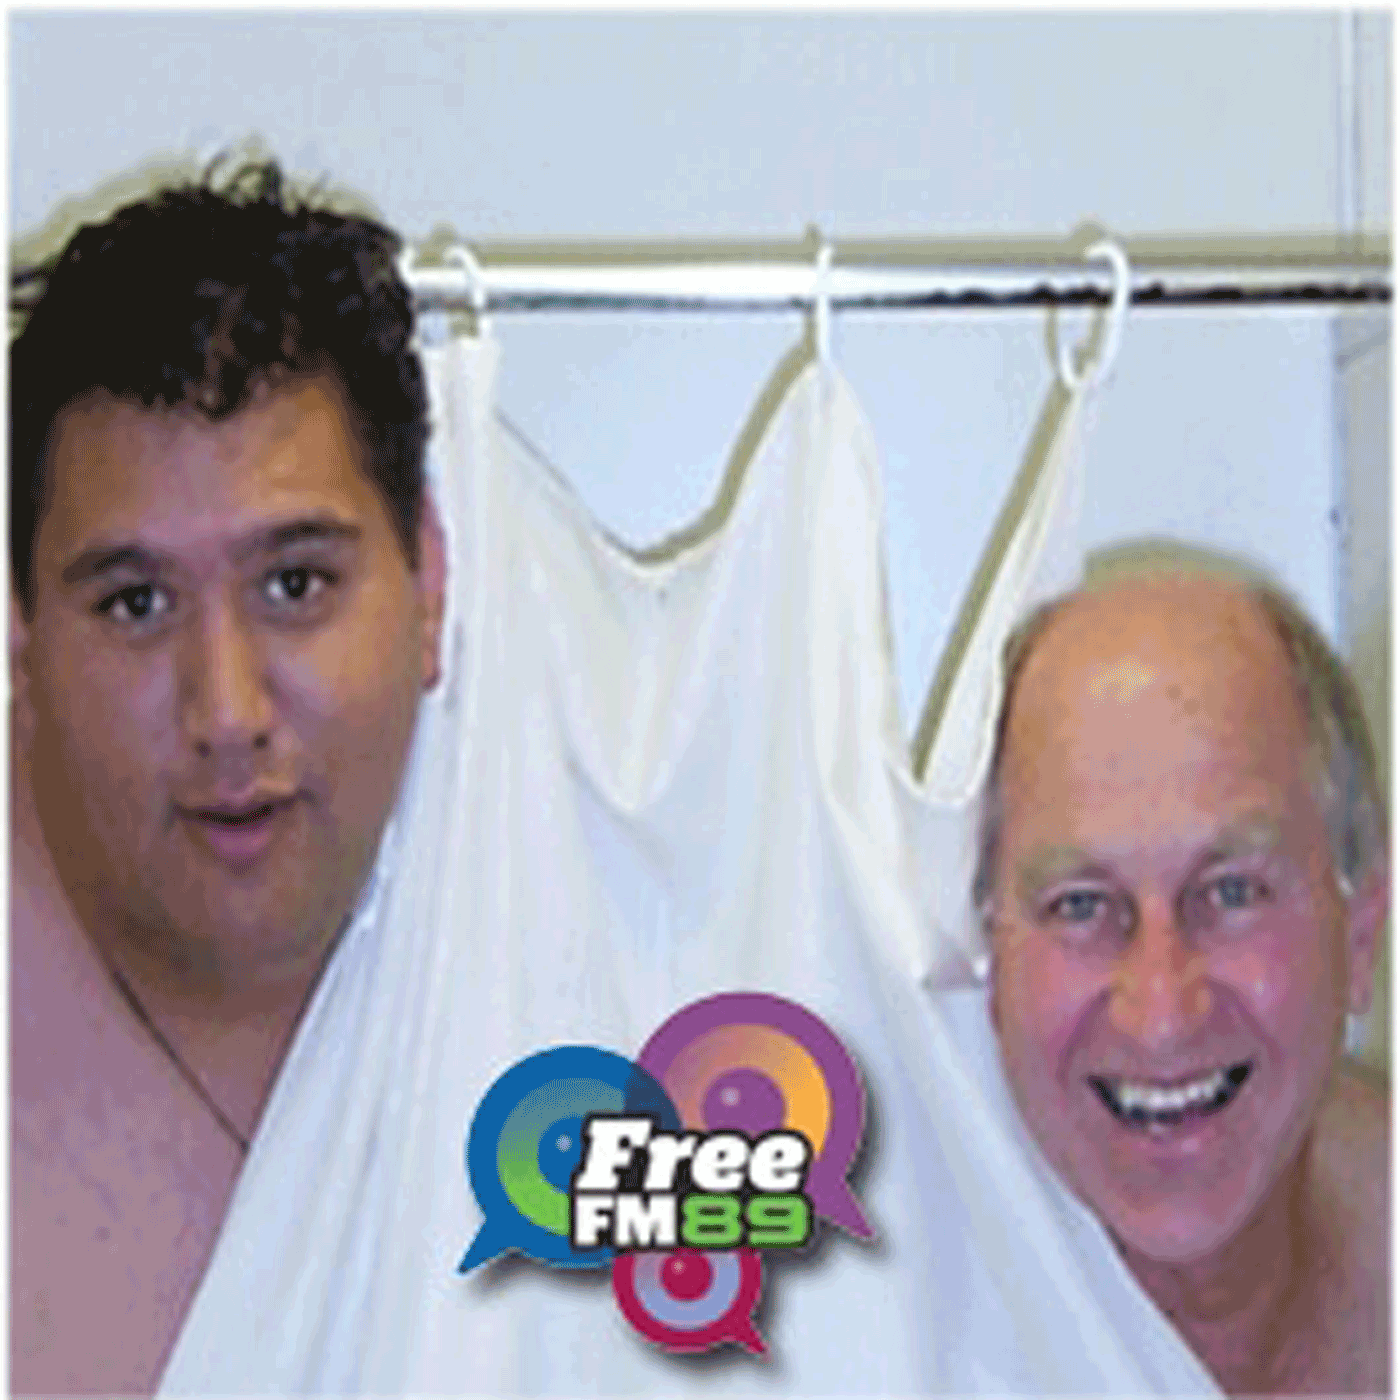 https://cdn.accessradio.org/StationFolder/freefm89/Images/HarmonyWaikato1.png